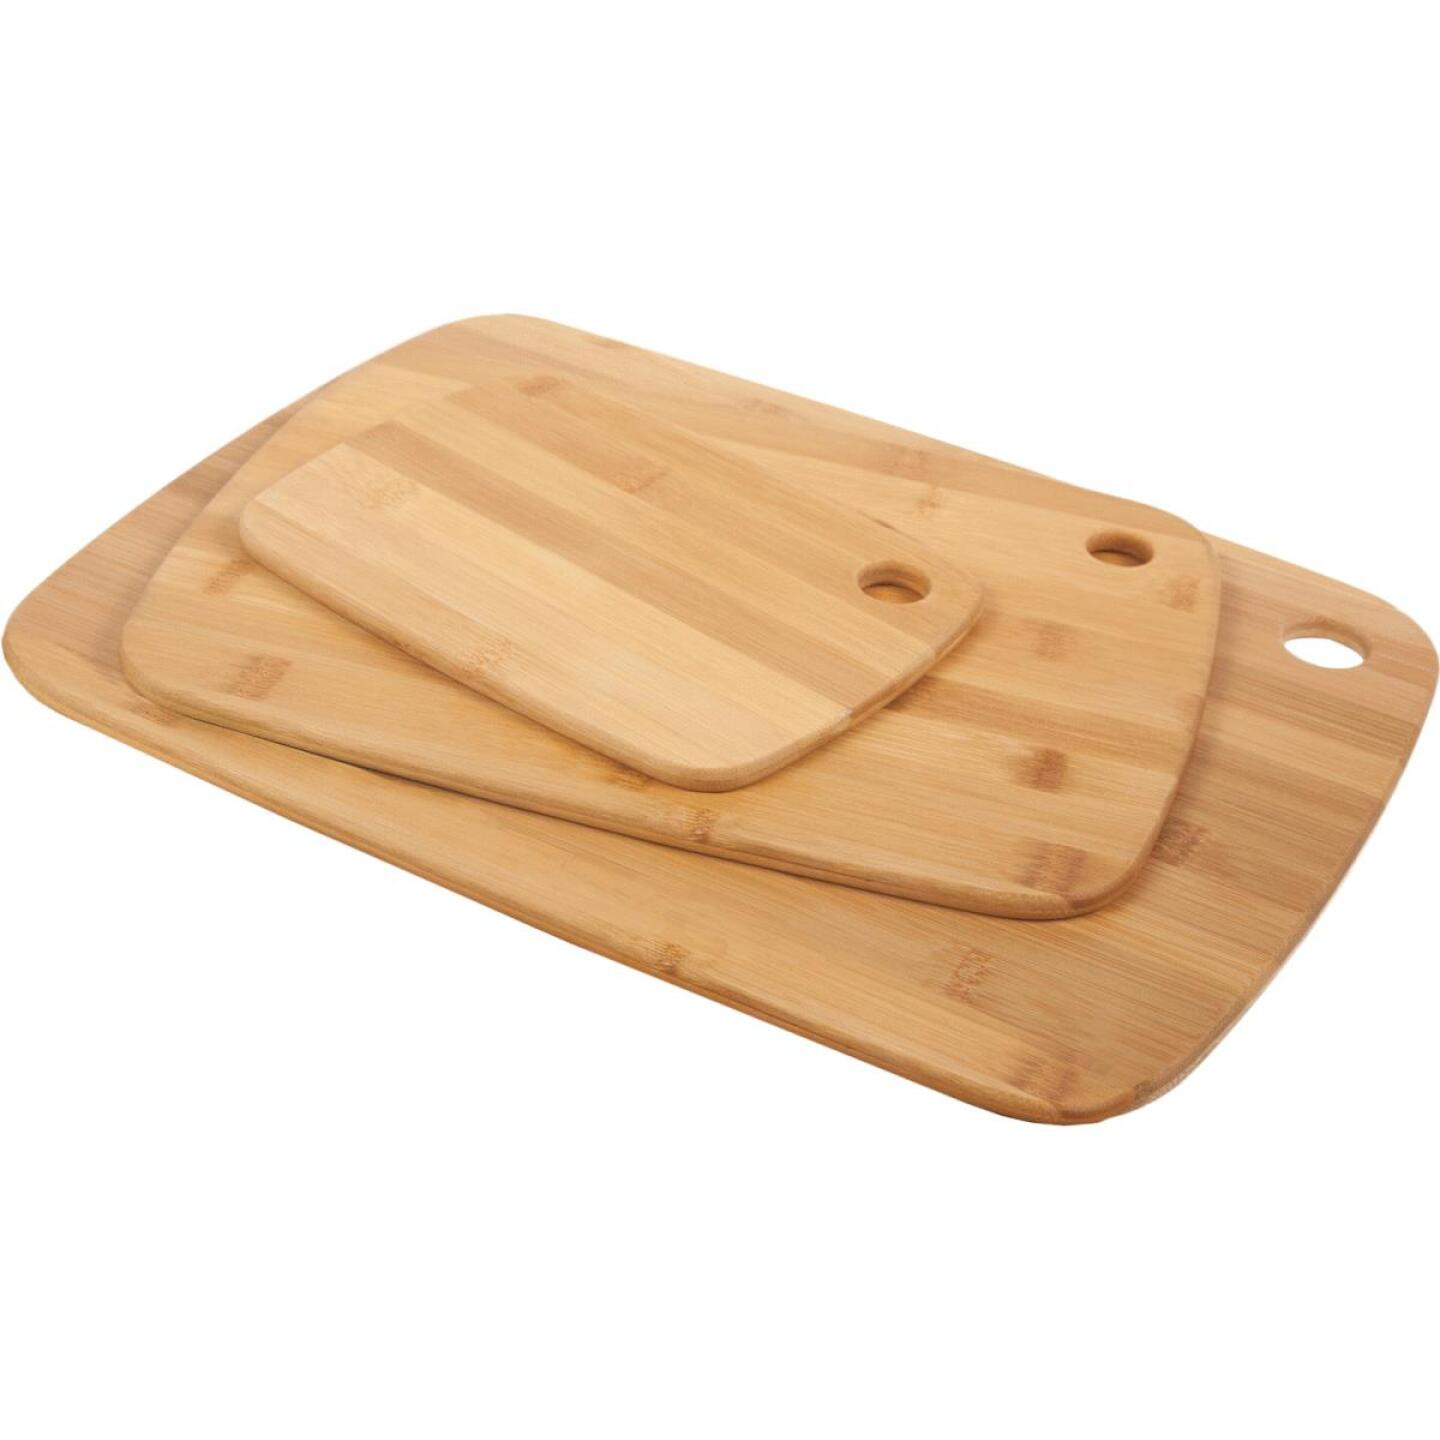 Core Classic Small/Medium/Large Natural Bamboo Cutting Board (3 Pack) Image 1